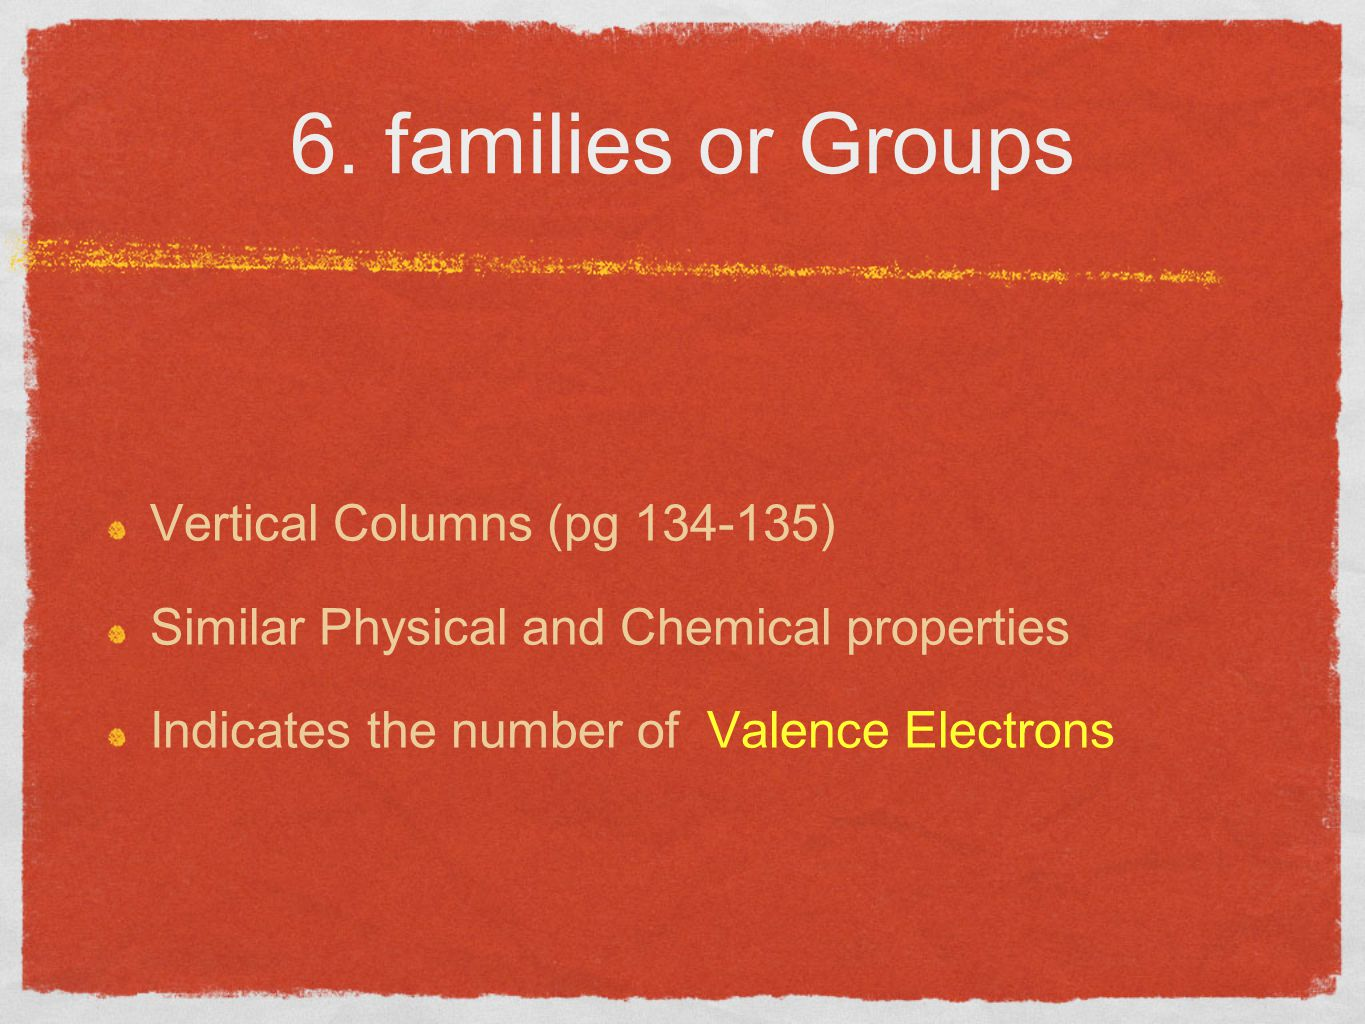 6. families or Groups Vertical Columns (pg 134-135)